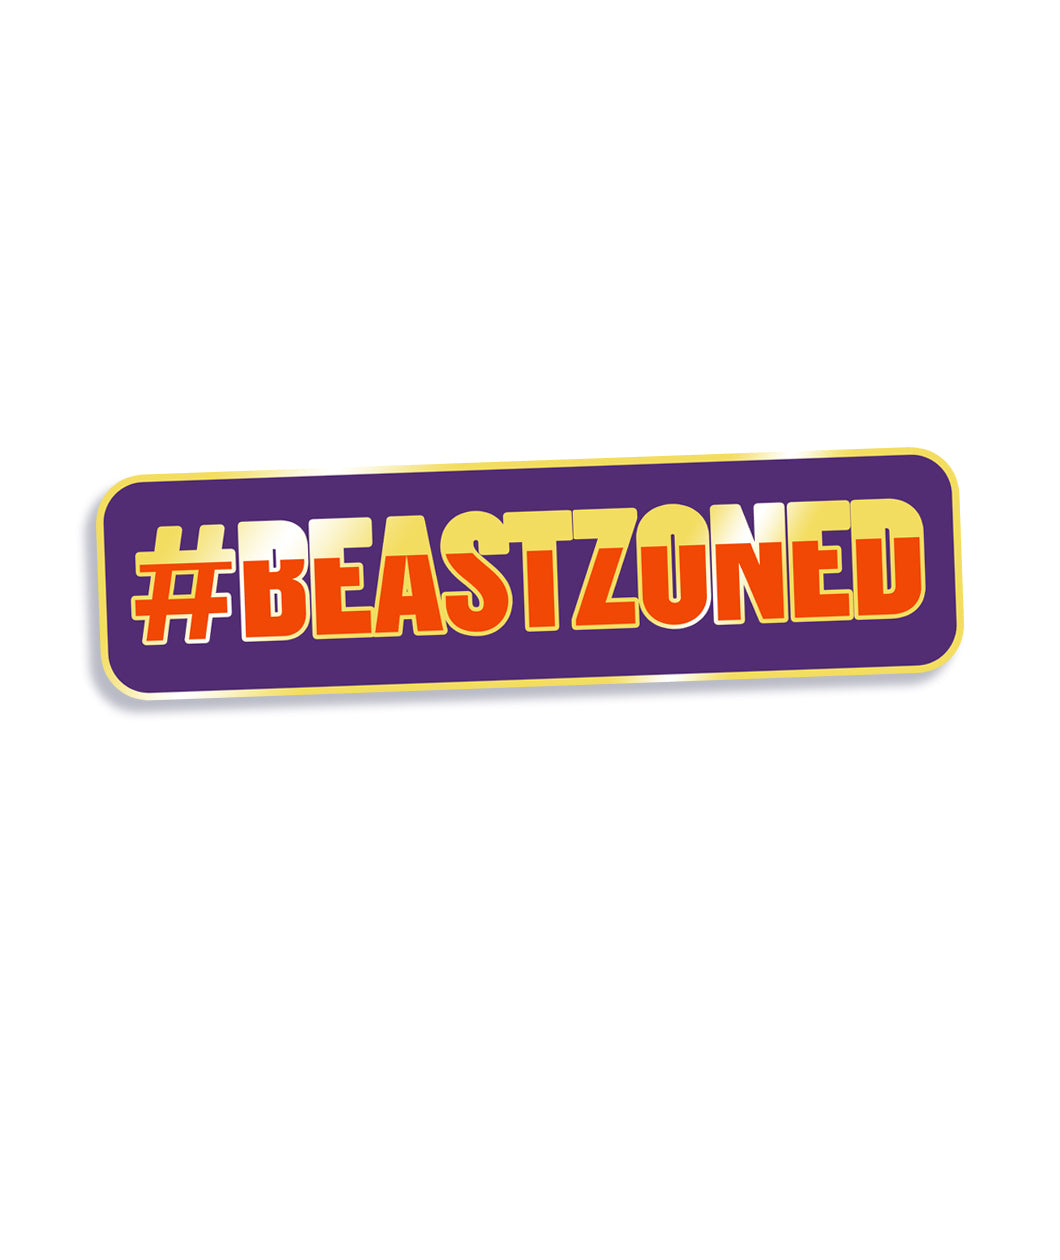 Beastzoned Enamel Pin - Patreon Price!